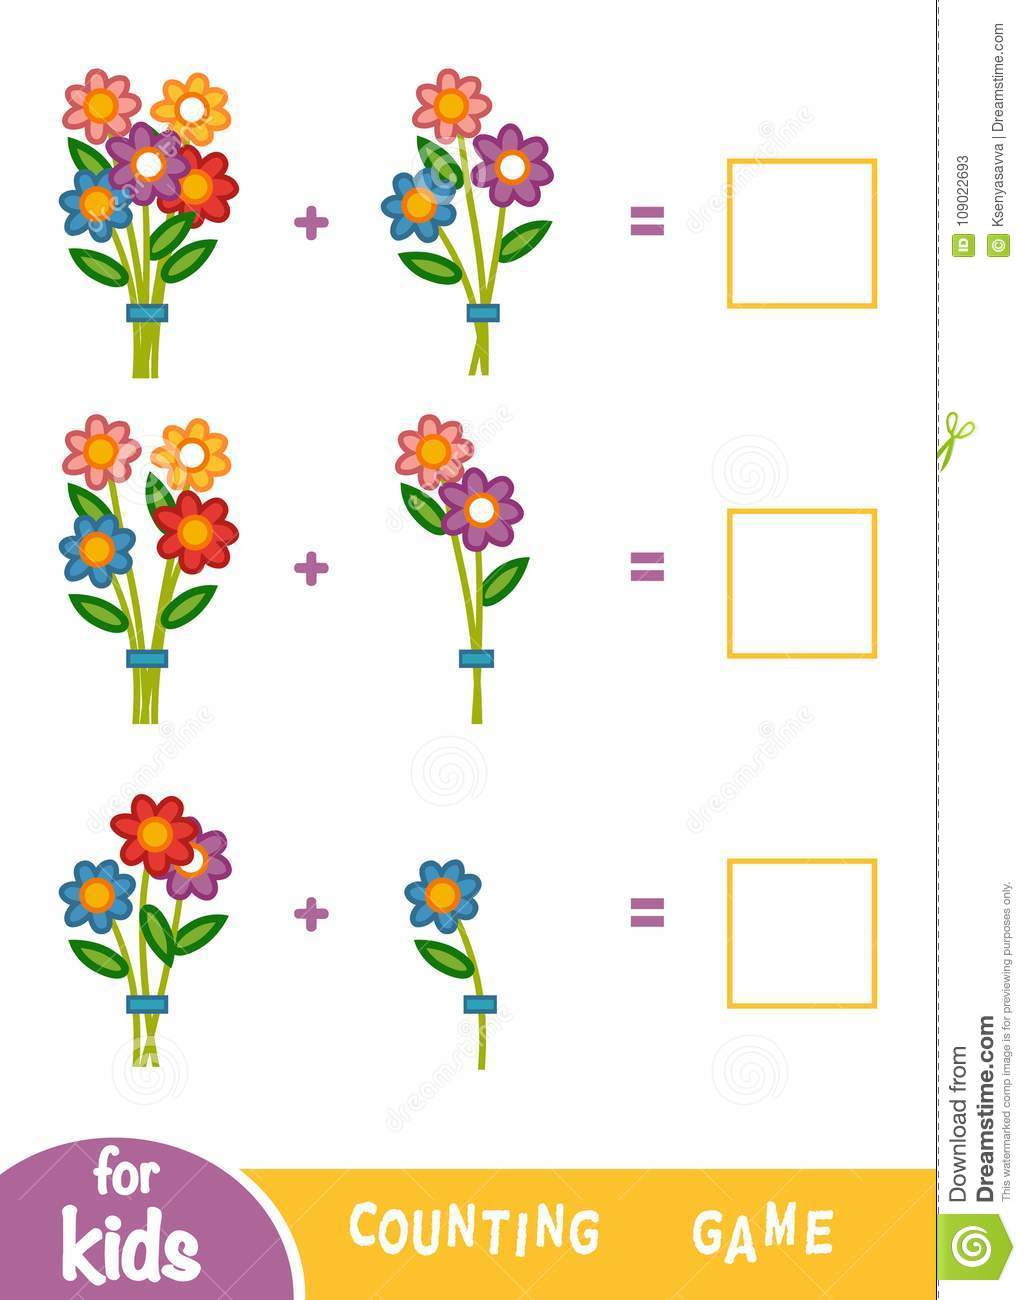 Counting Game For Children Count The Number Of Flowers